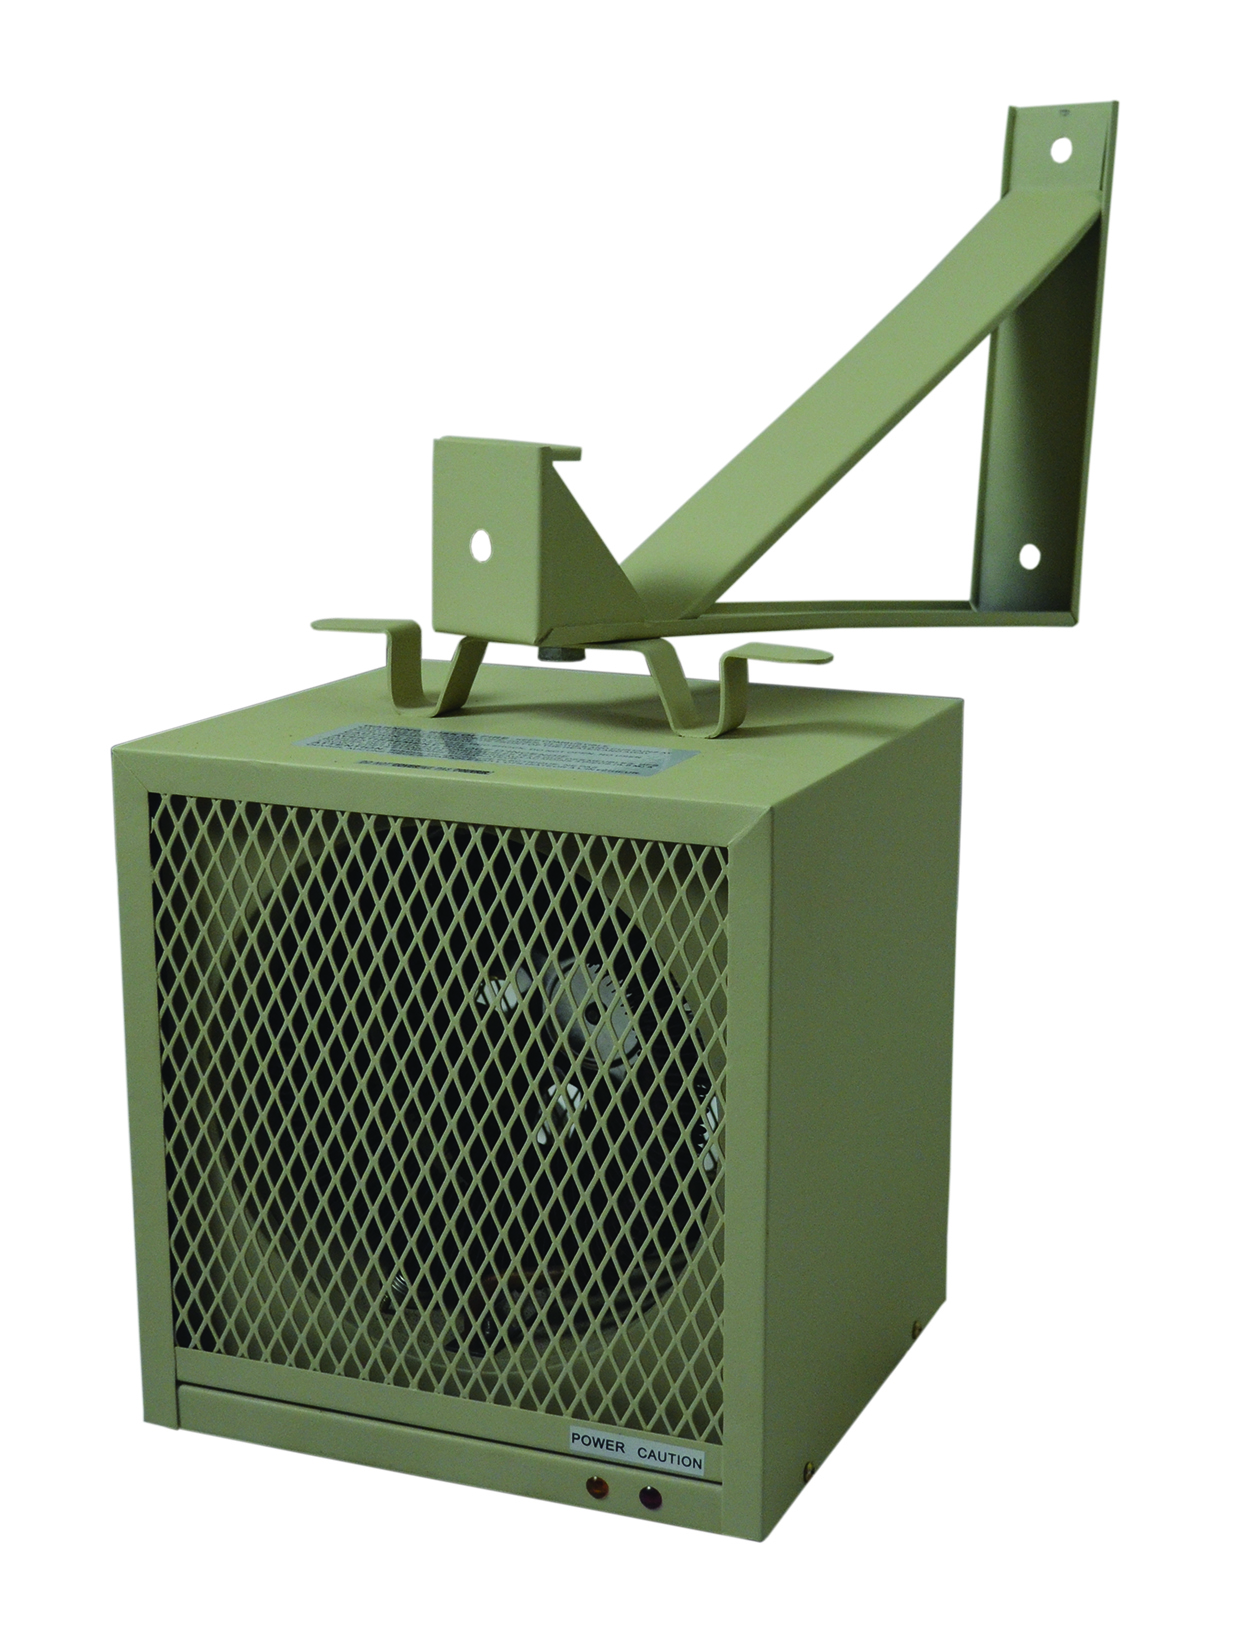 TPI HF5840TC 4000/3000W 240/208V FAN FORCED GARAGE /SHOP HEATER THIS REPLACES GCH4000 WHICH IS OBSOLETE